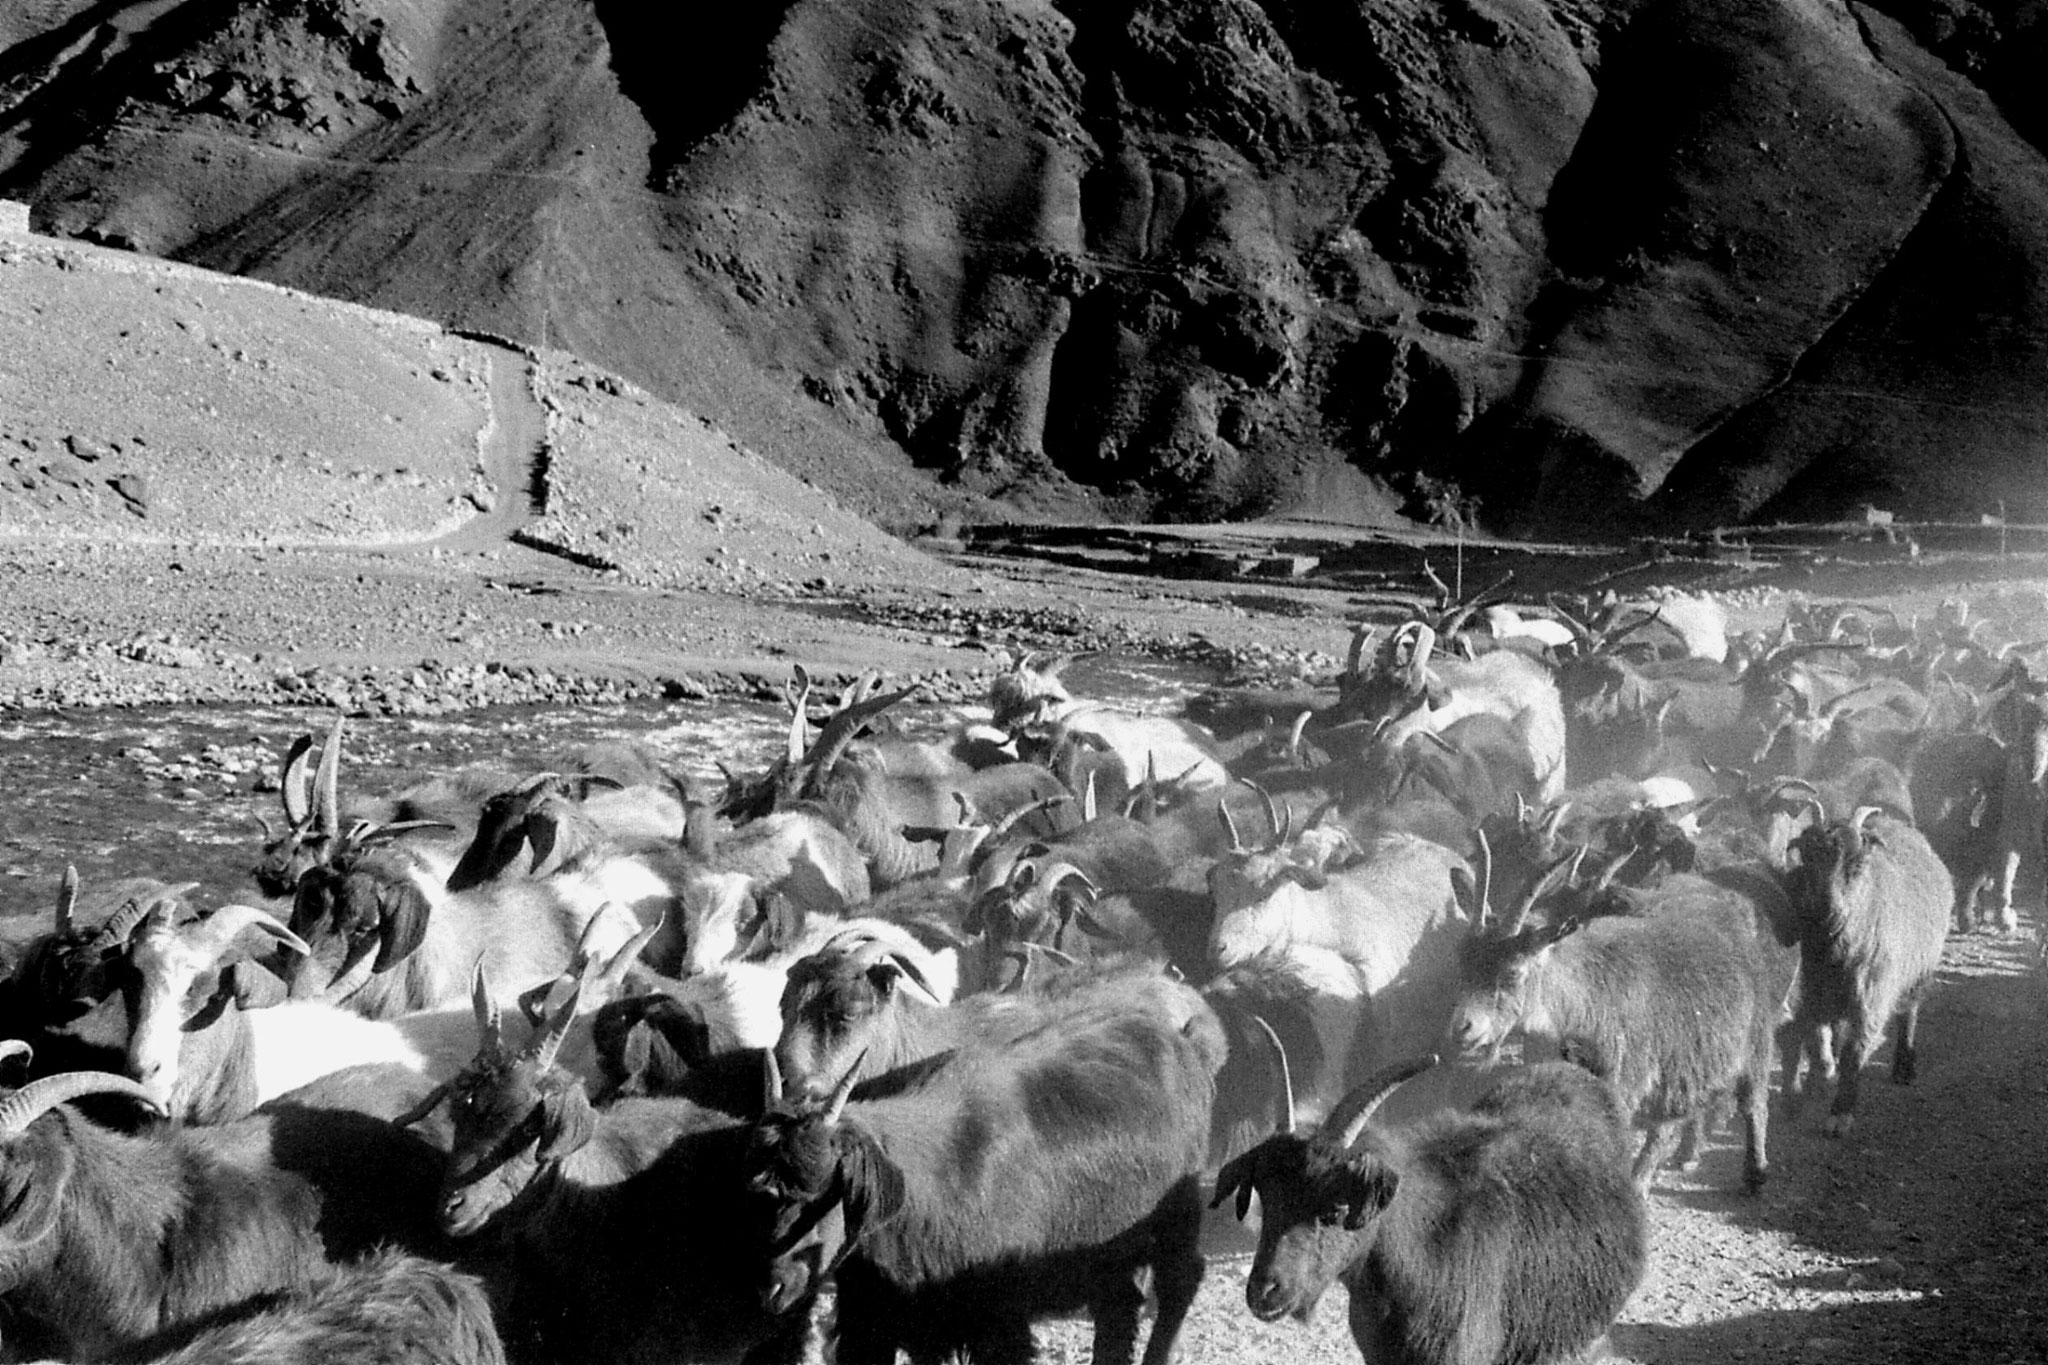 26/10/1989: 10: between Barsat and Langar, goats